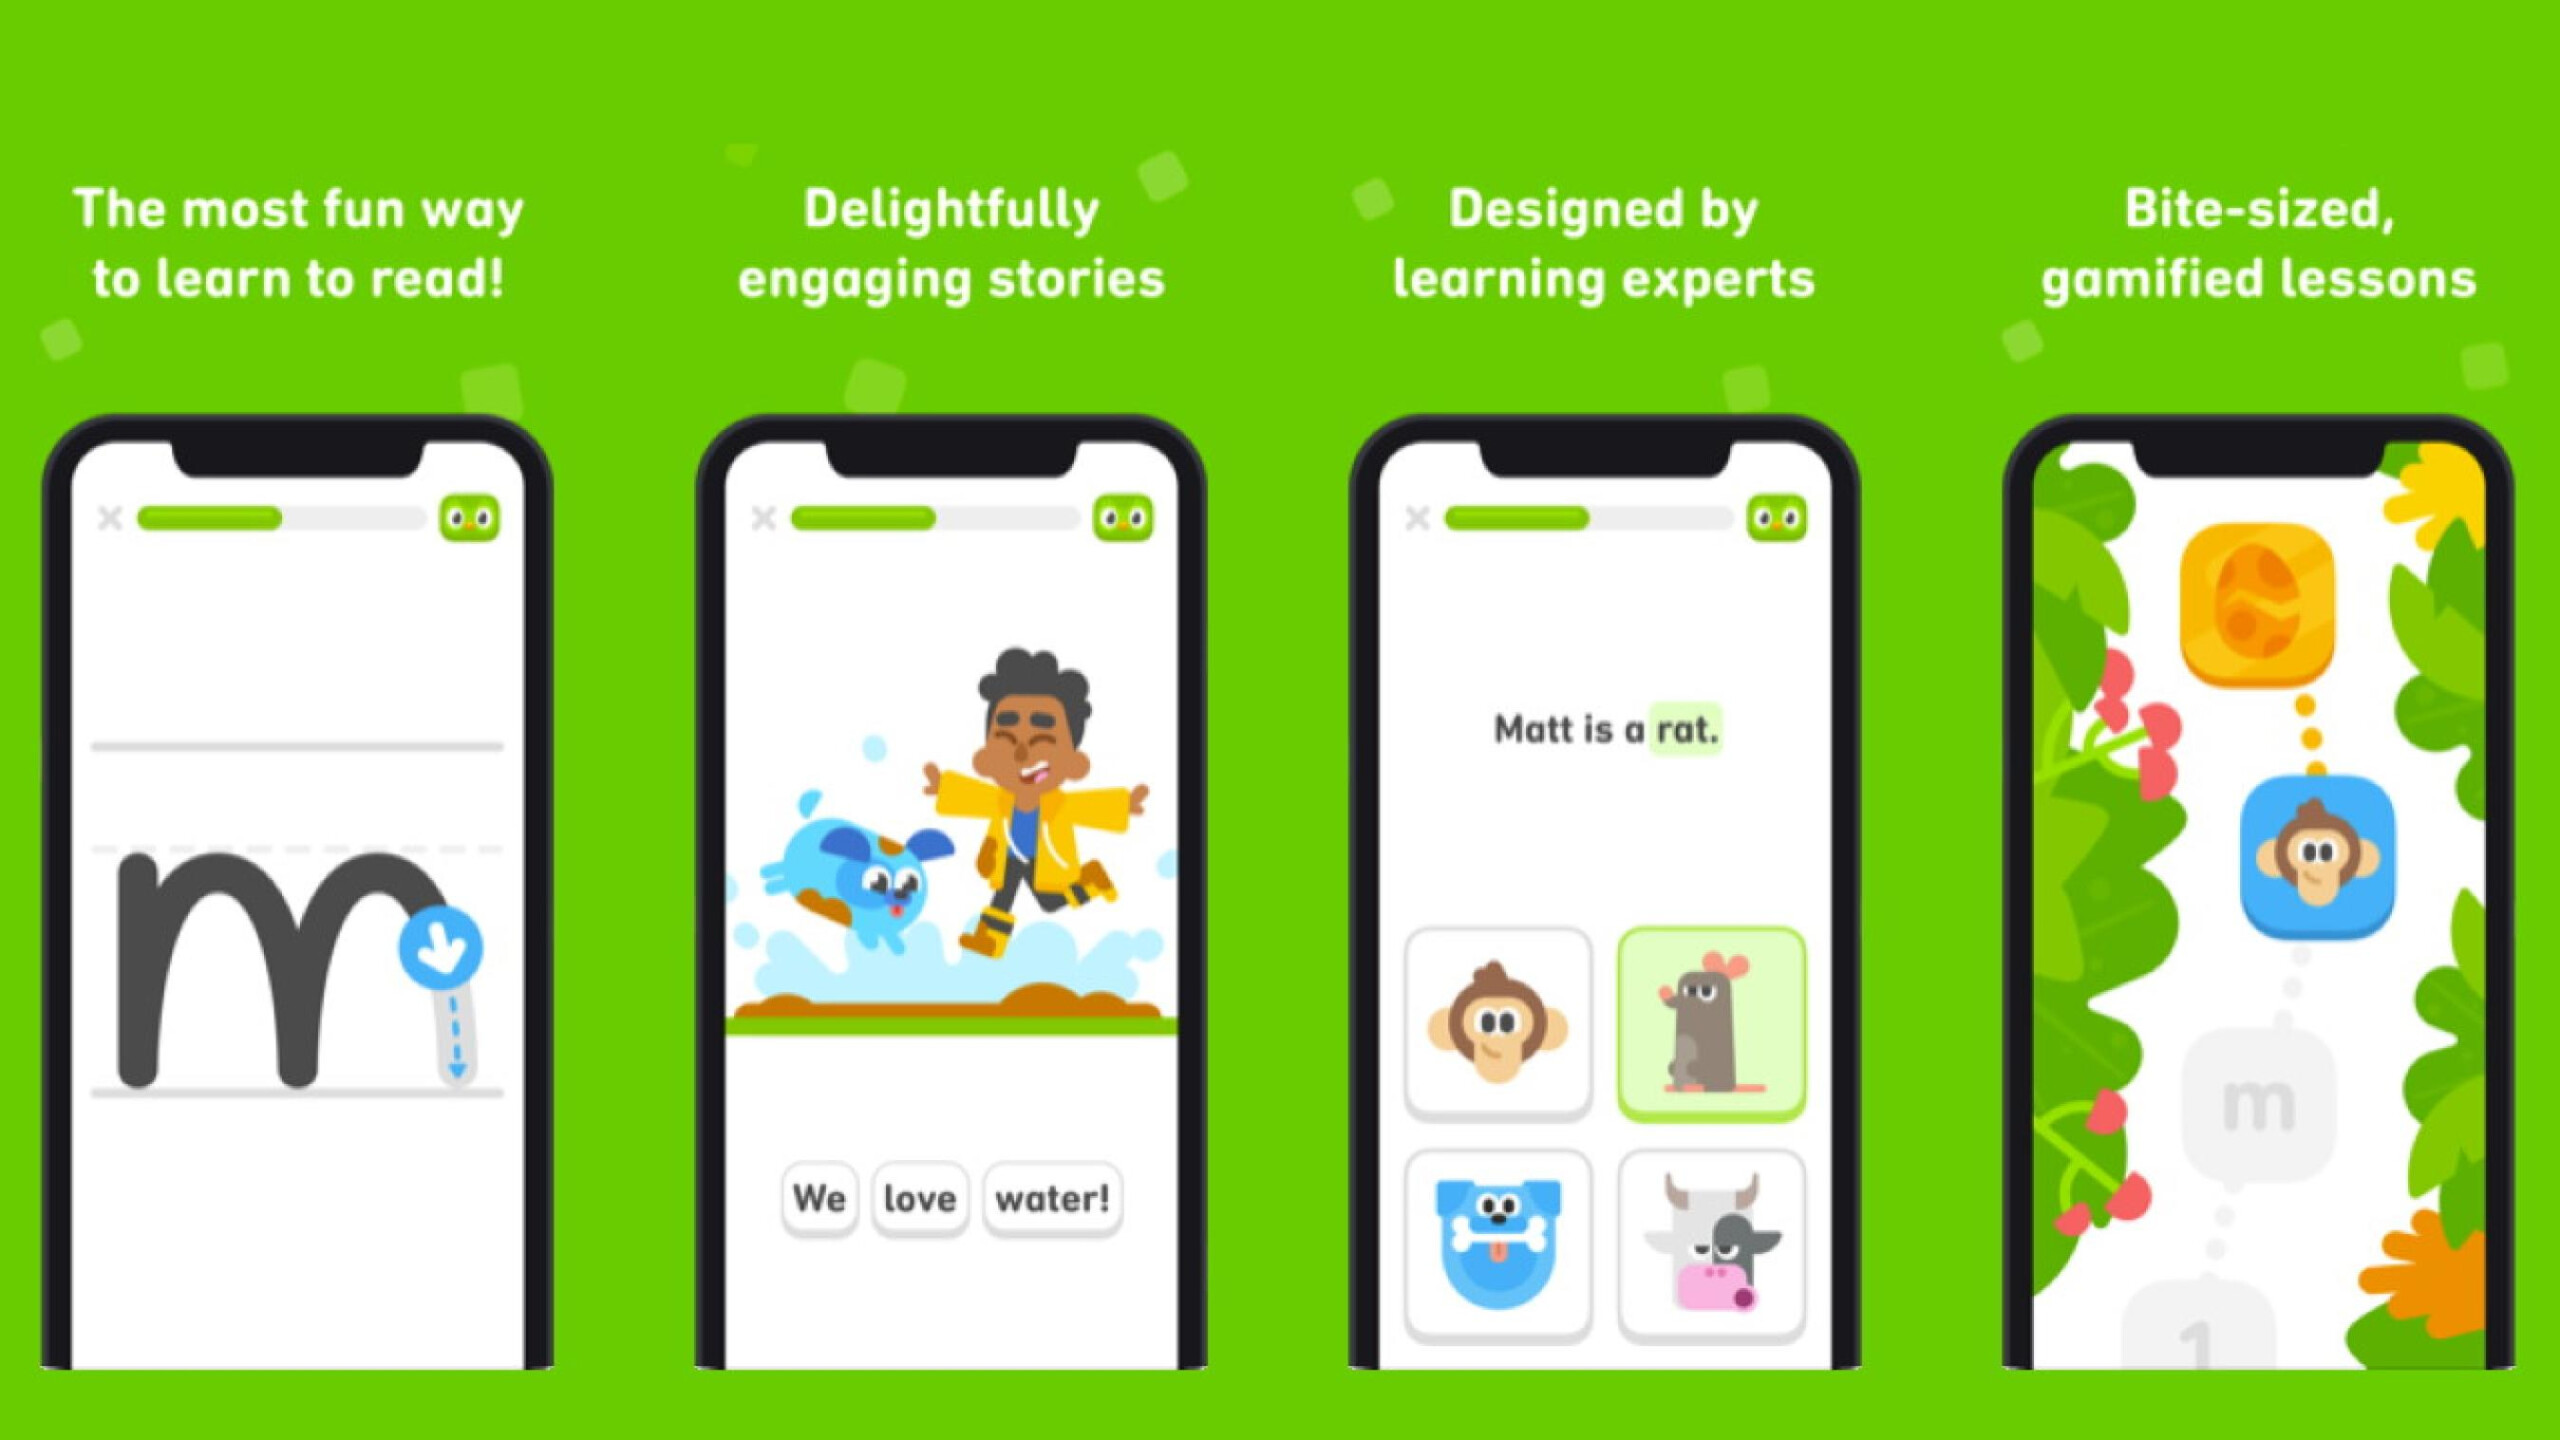 Duolingo Abc App Teaches Kids To Read For Free | Pcmag